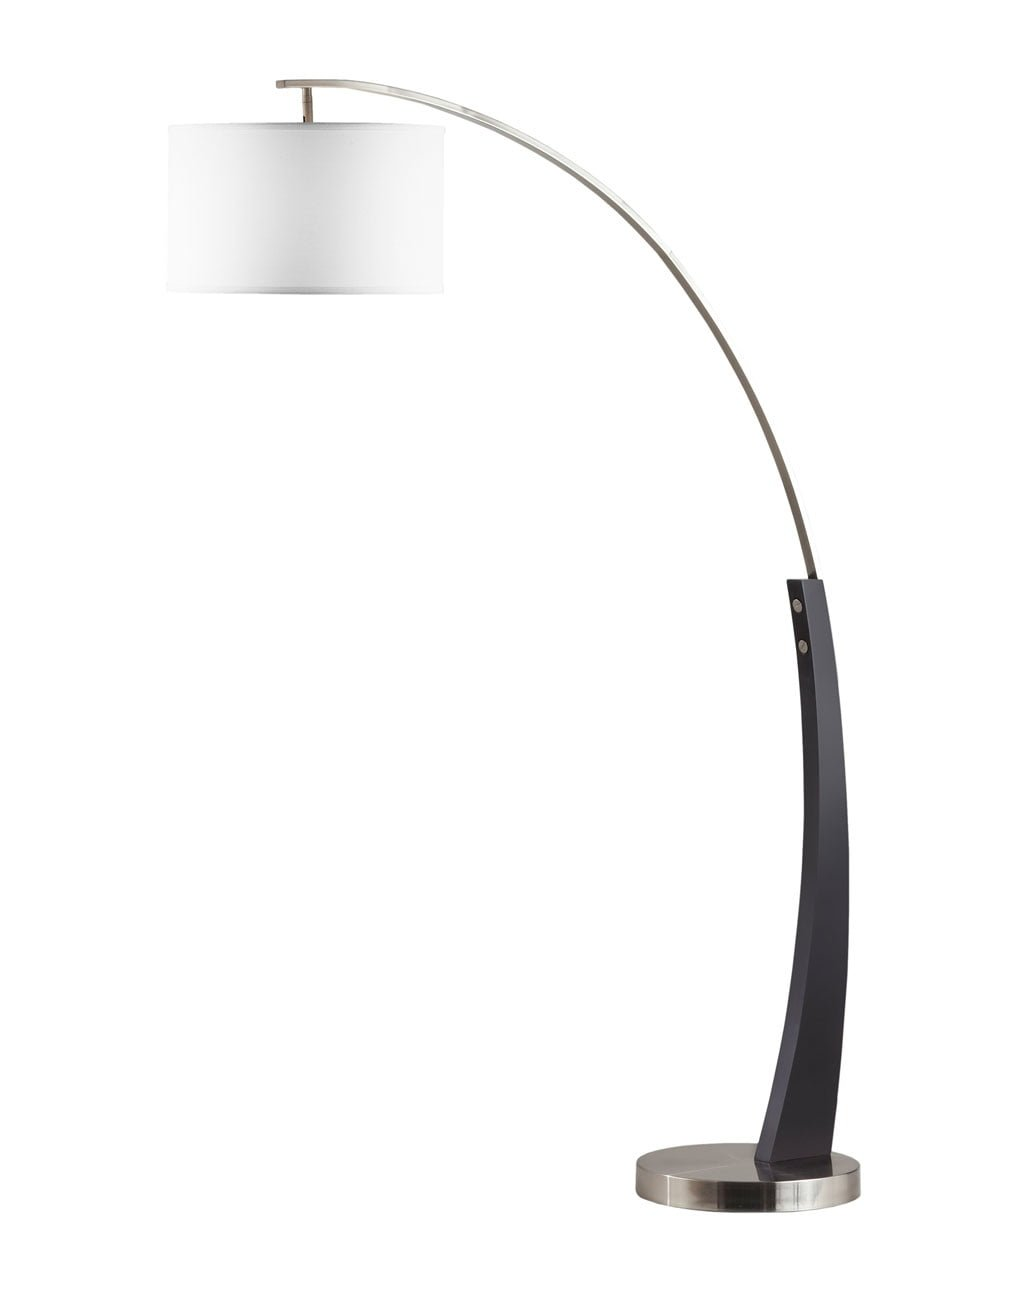 Plimpton Arc Lamp, Brushed Nickel